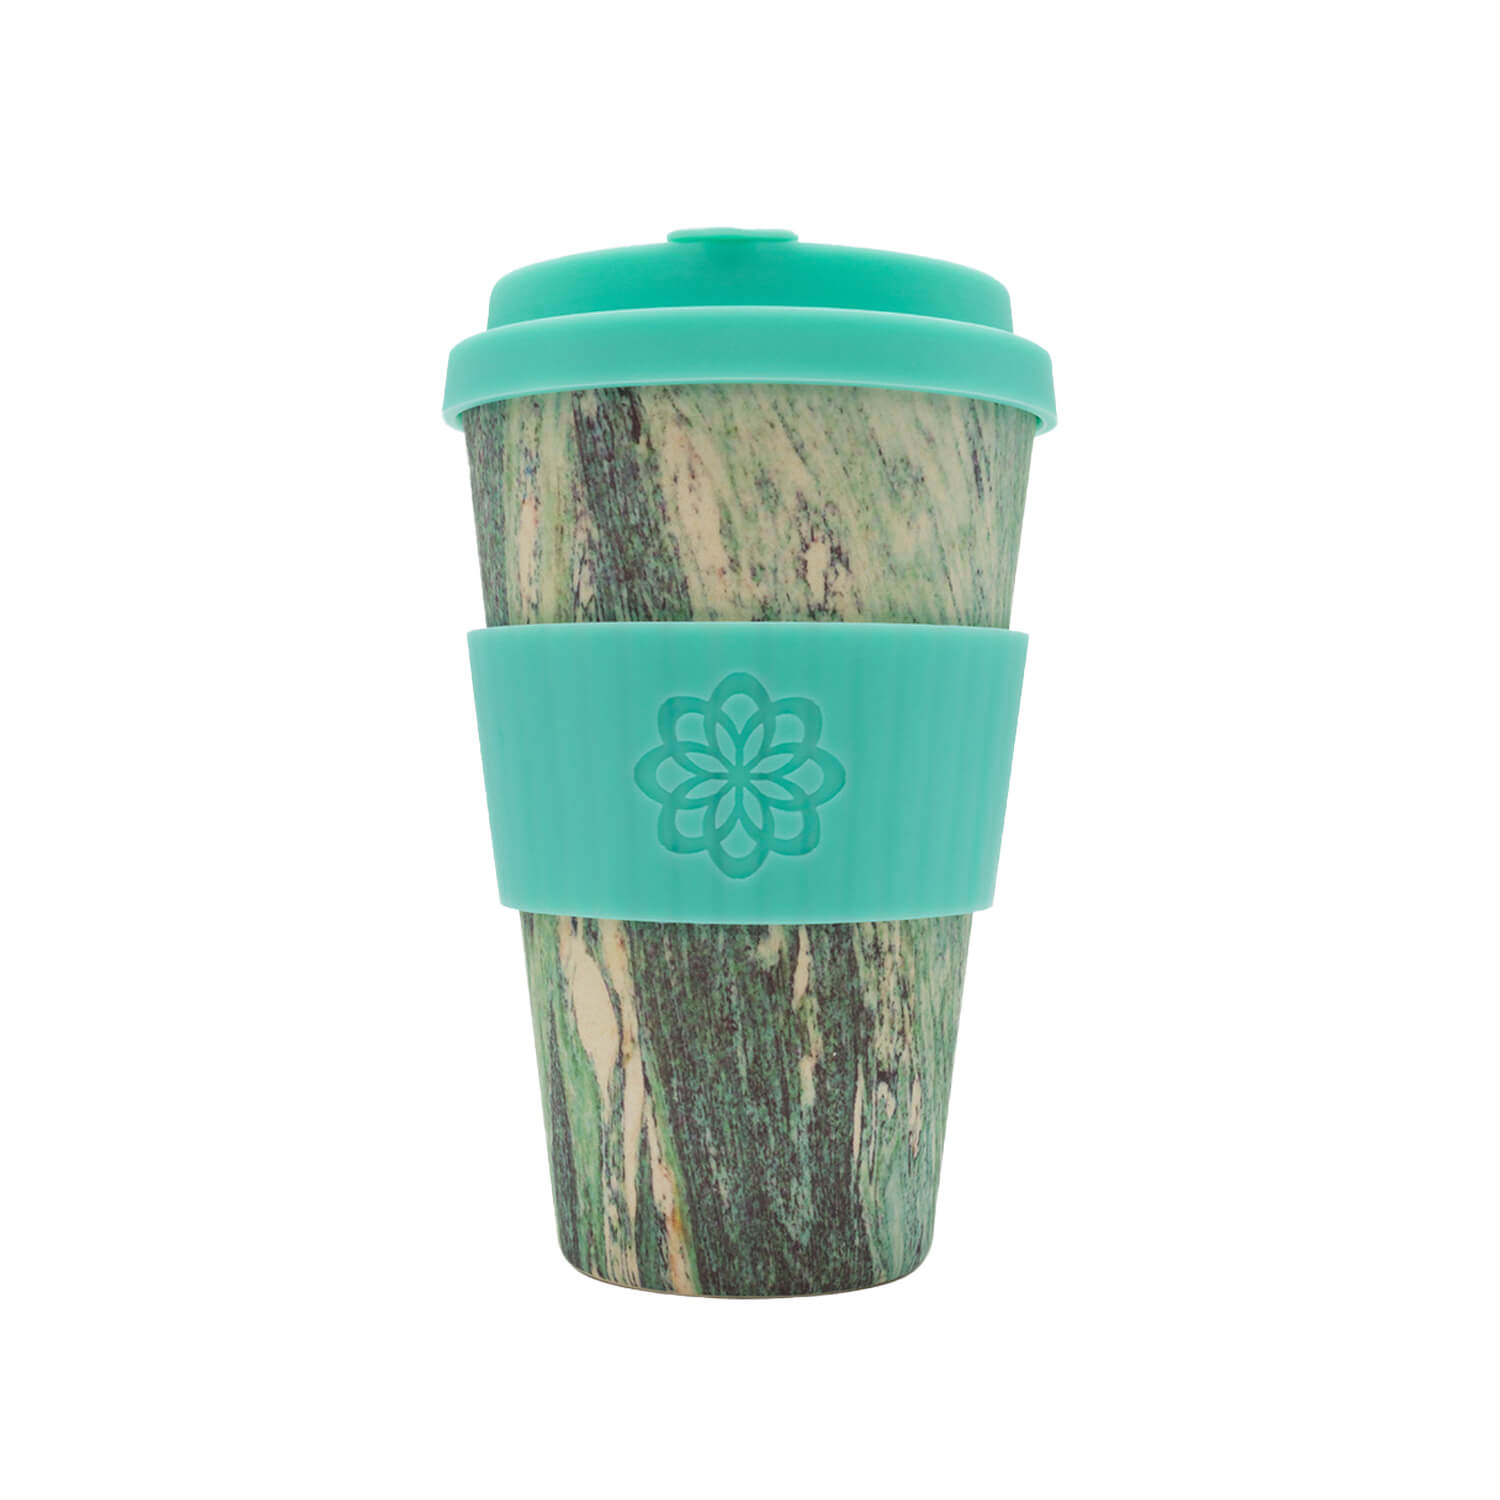 Ecoffee cup - Marmo verde - 400 ml